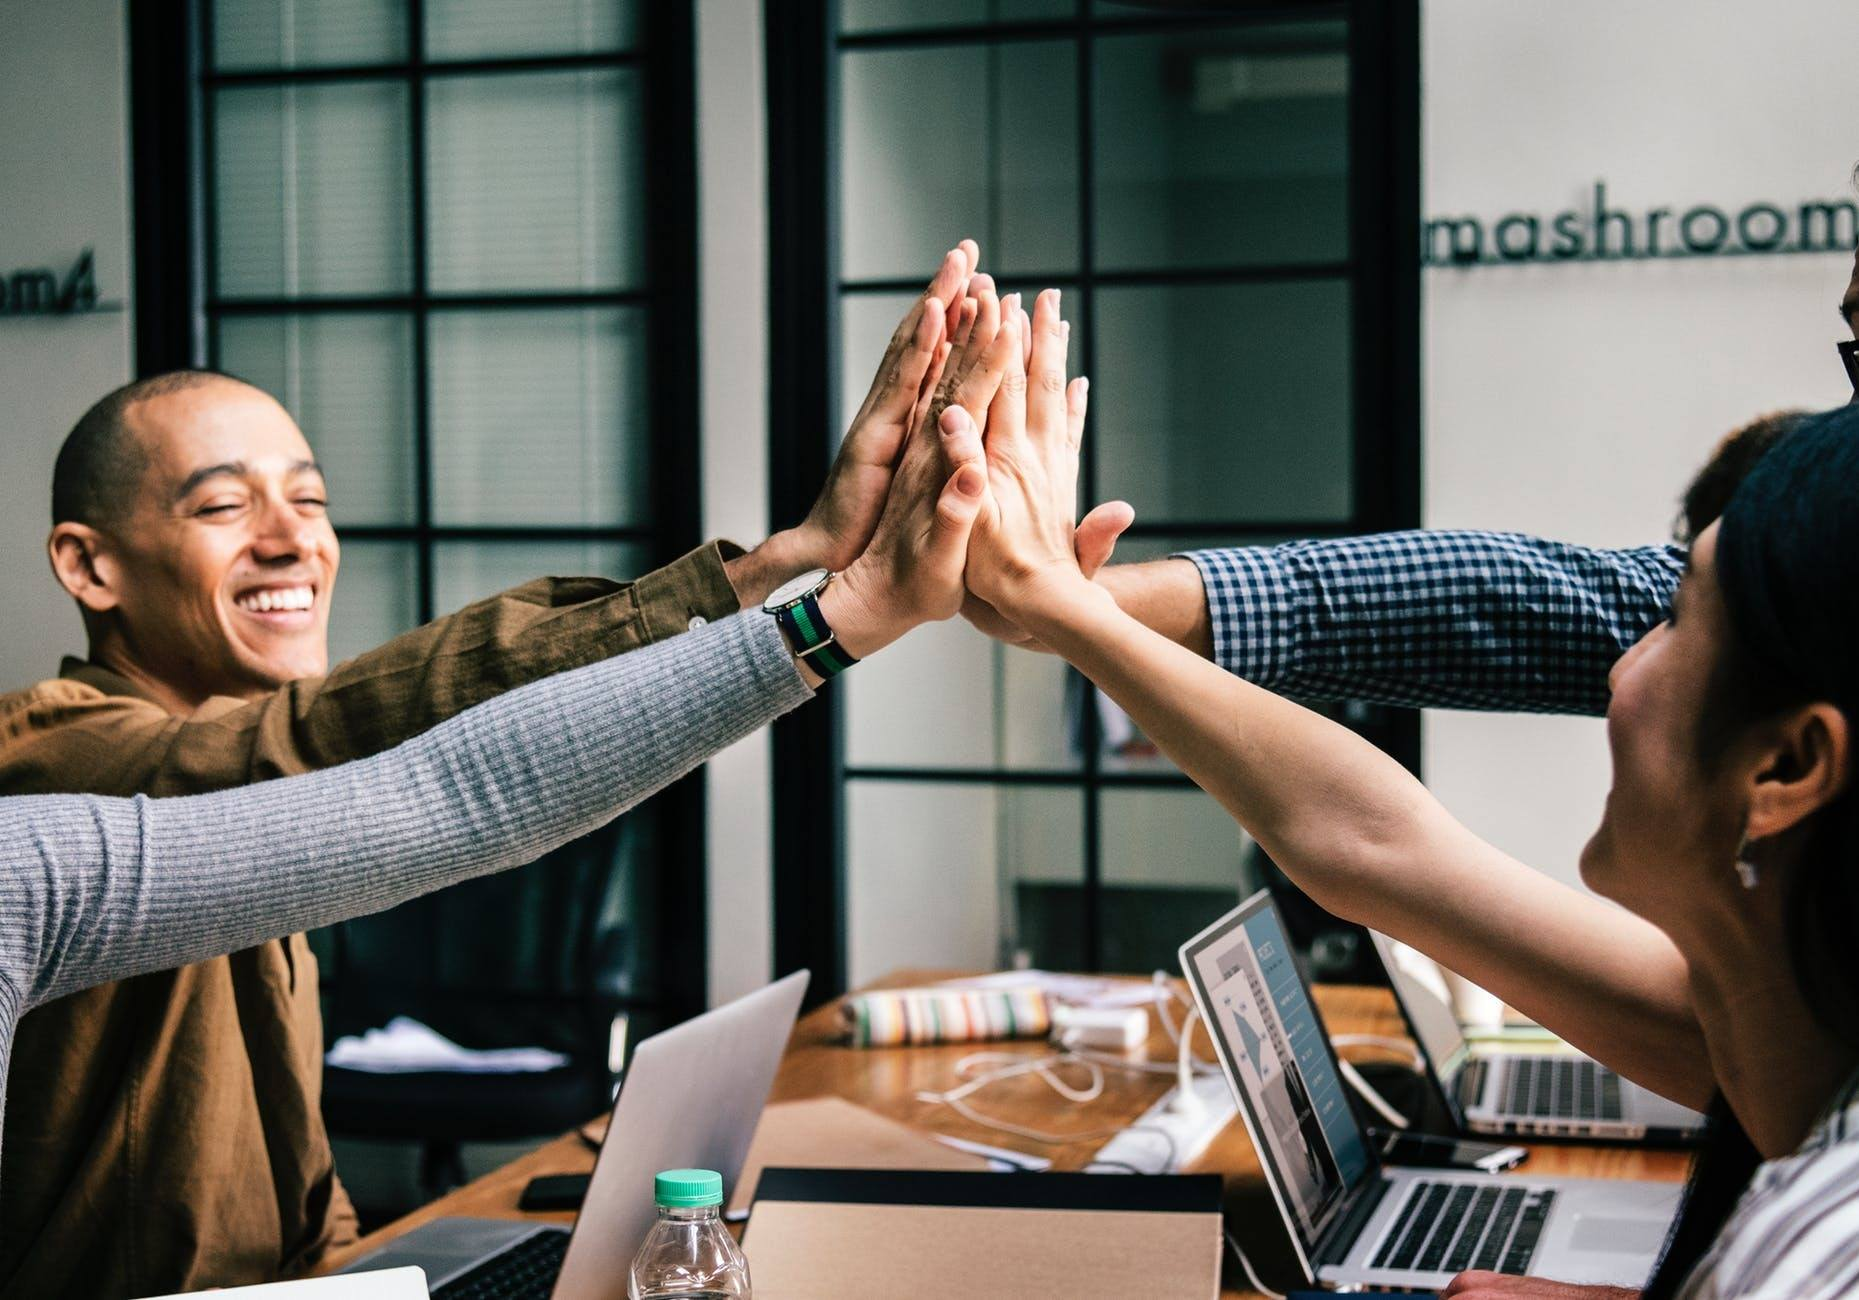 Why Teamwork in the Workplace is So Important